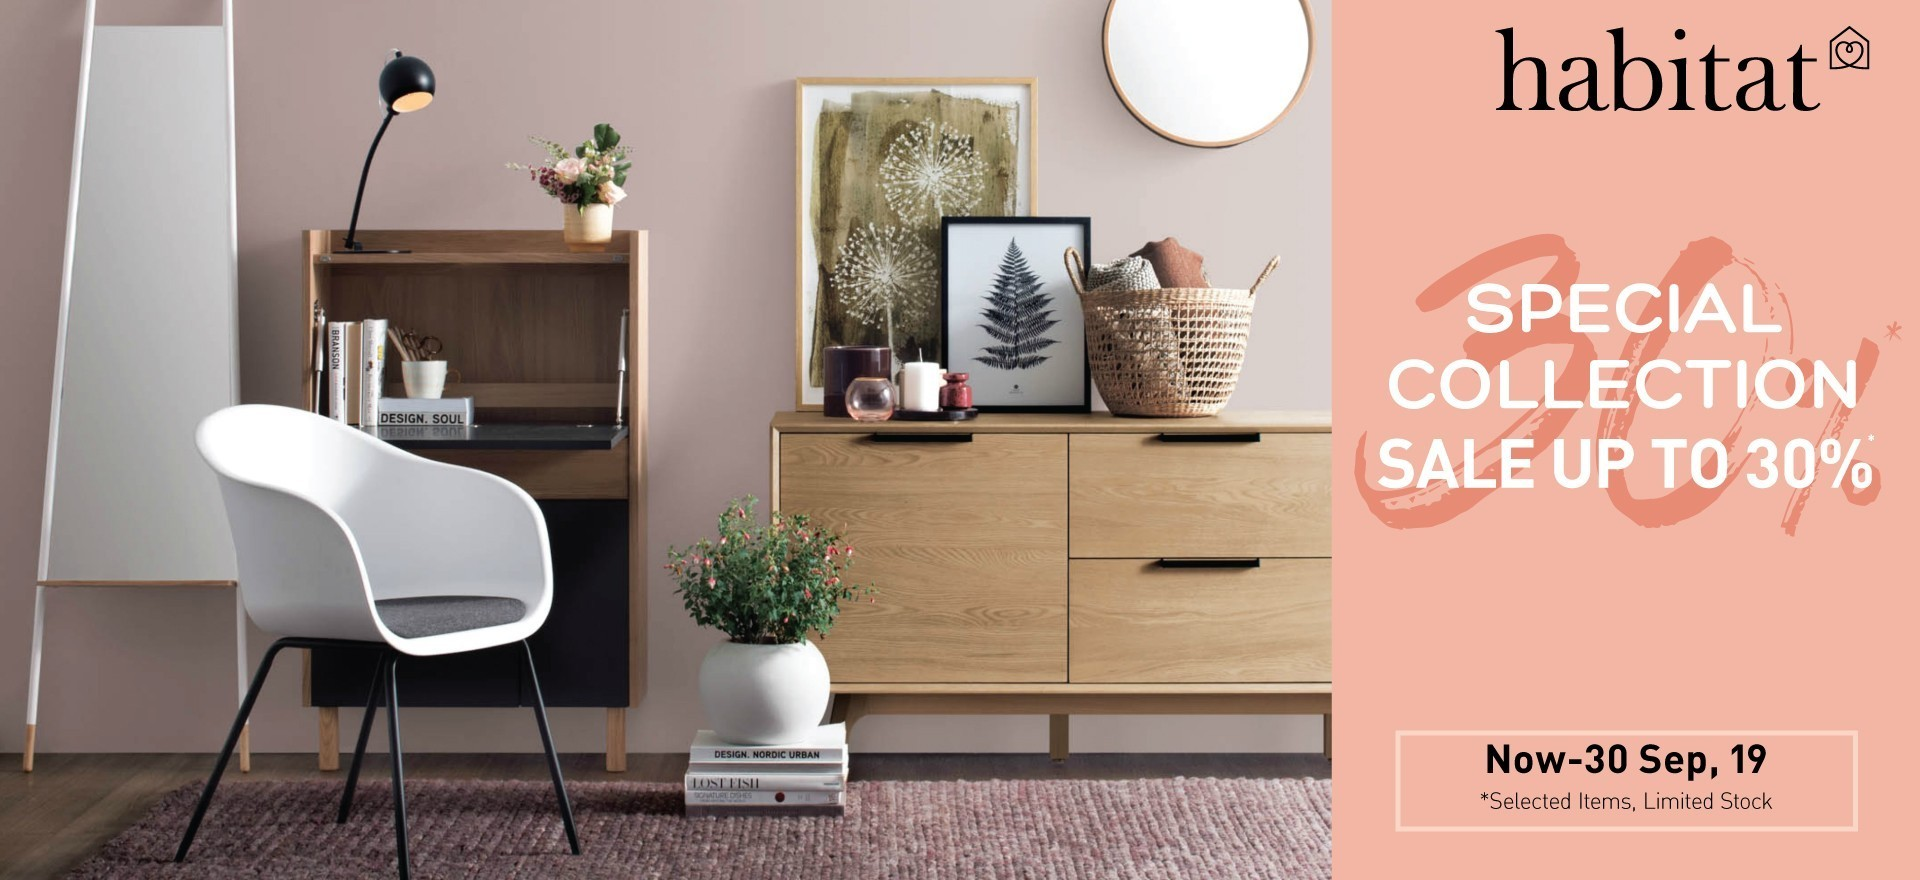 Habitat Special Collection sale up to 30%